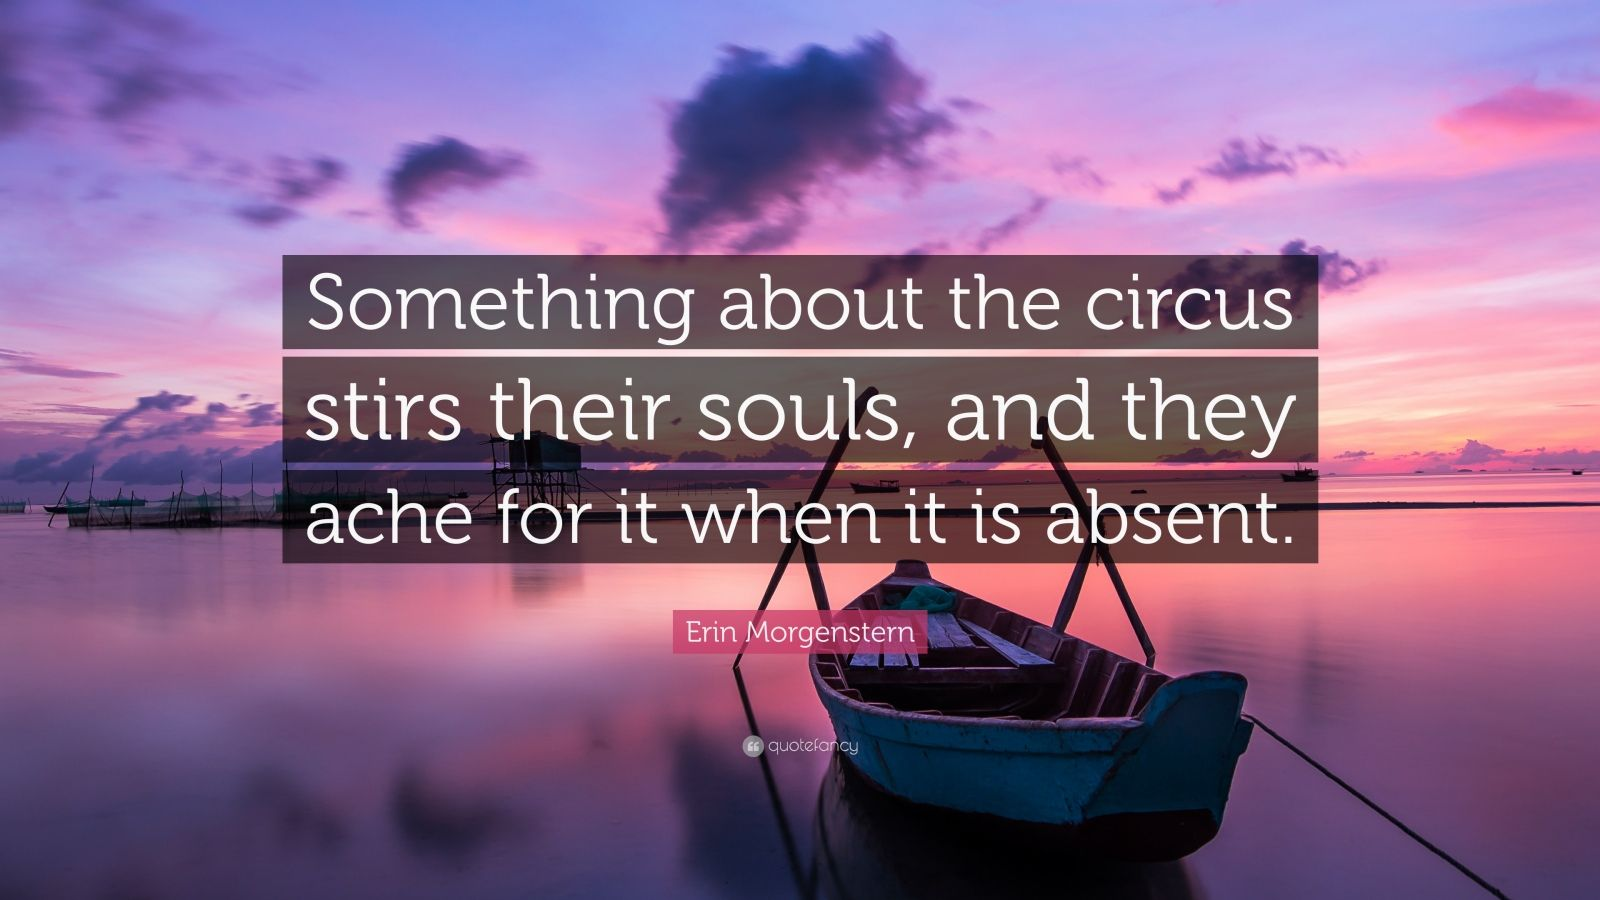 """Erin Morgenstern Quote: """"Something about the circus stirs their souls, and they ache for it when it is absent."""""""